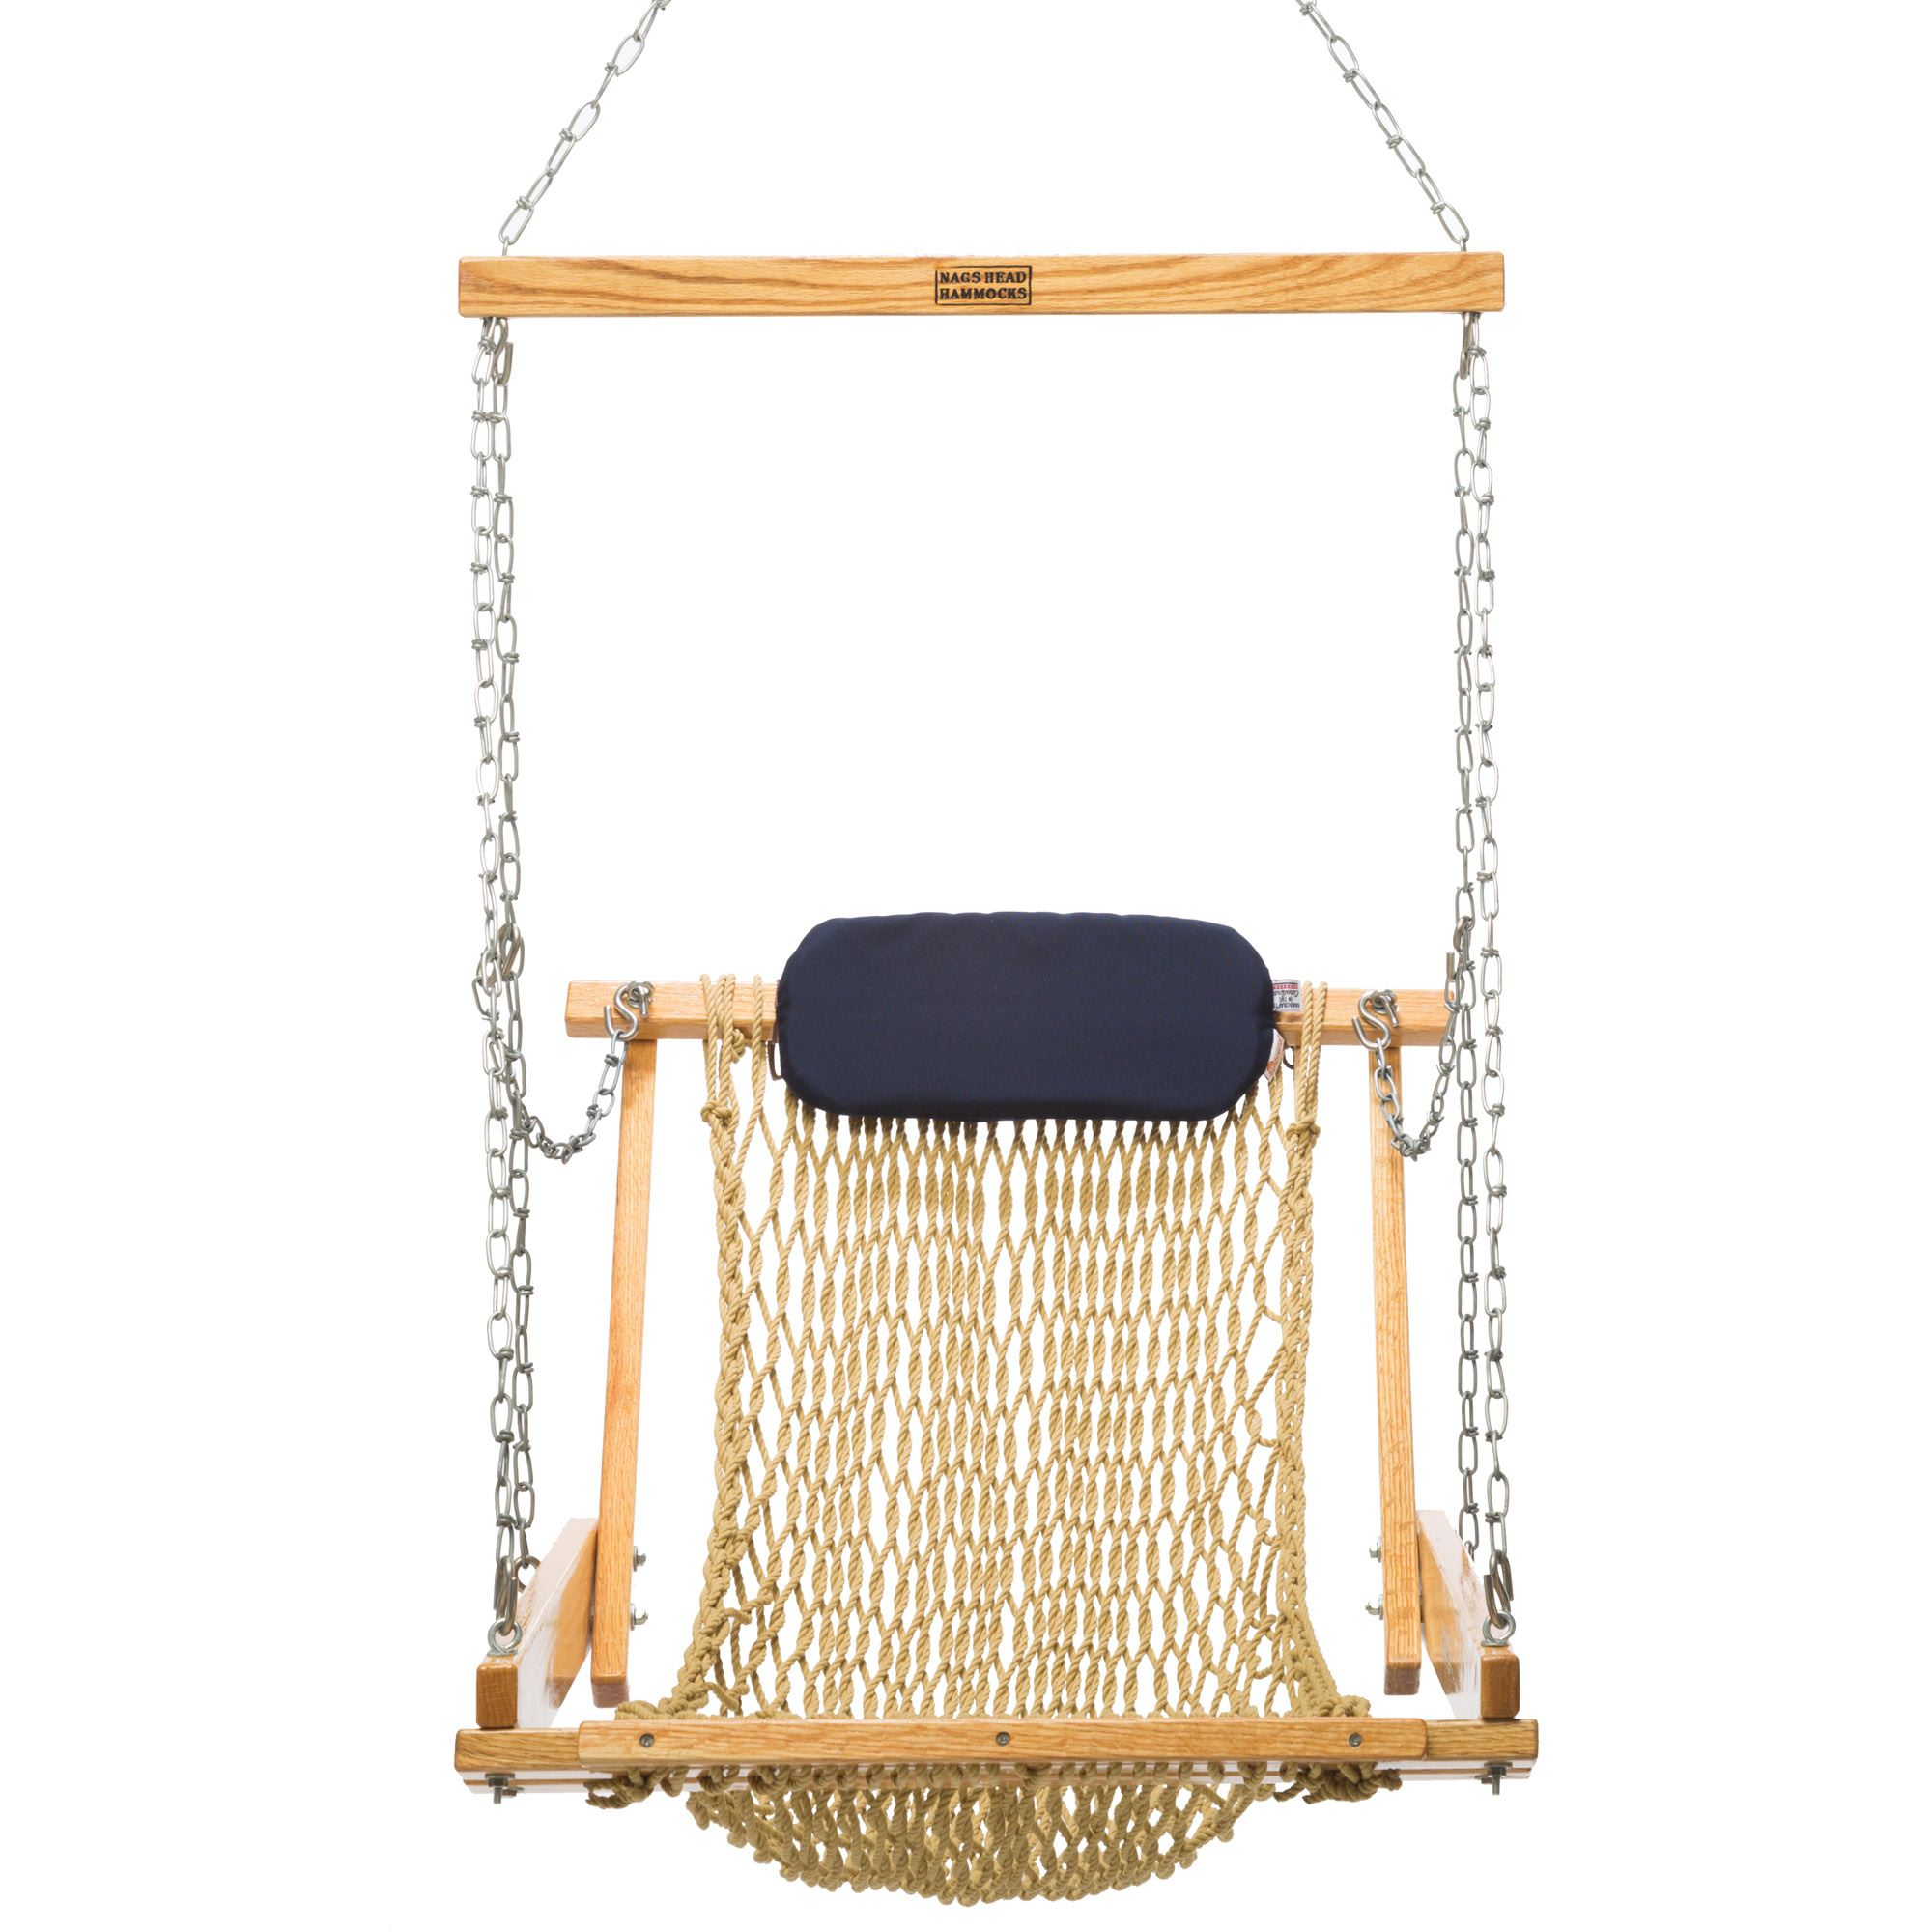 Hanging Hammock Chair